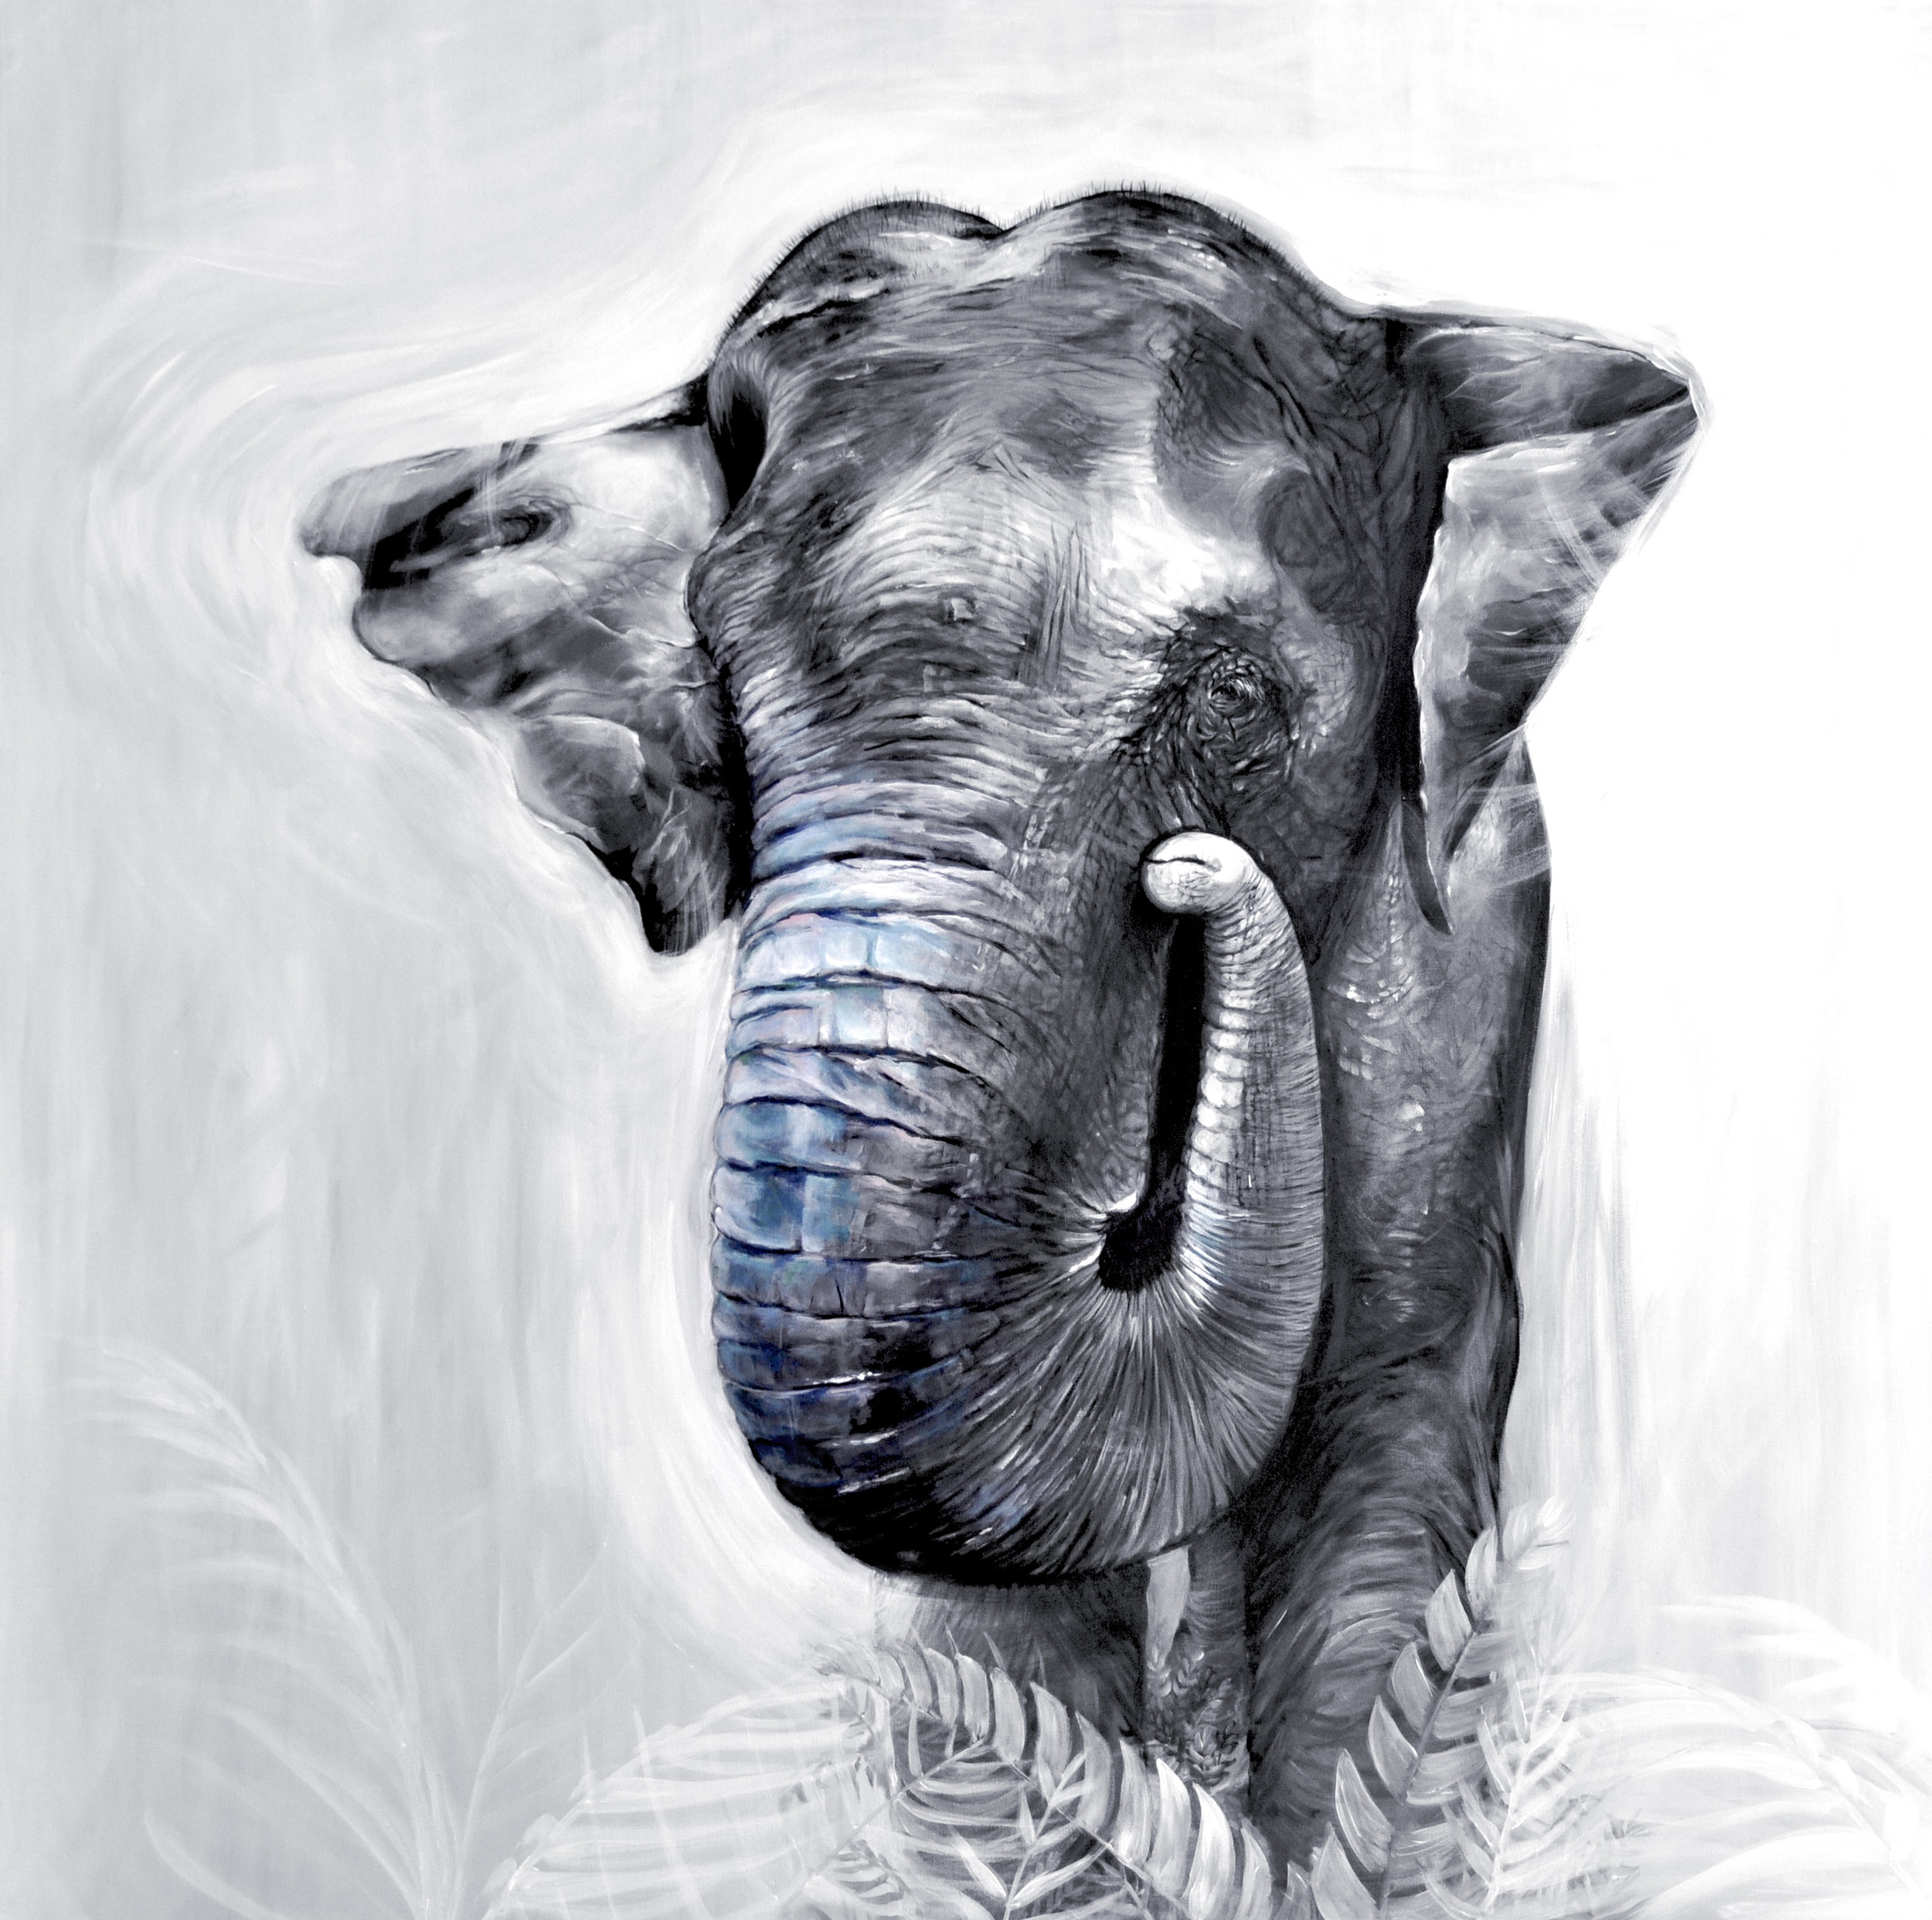 asianelephant_Aliarmstrong.JPG